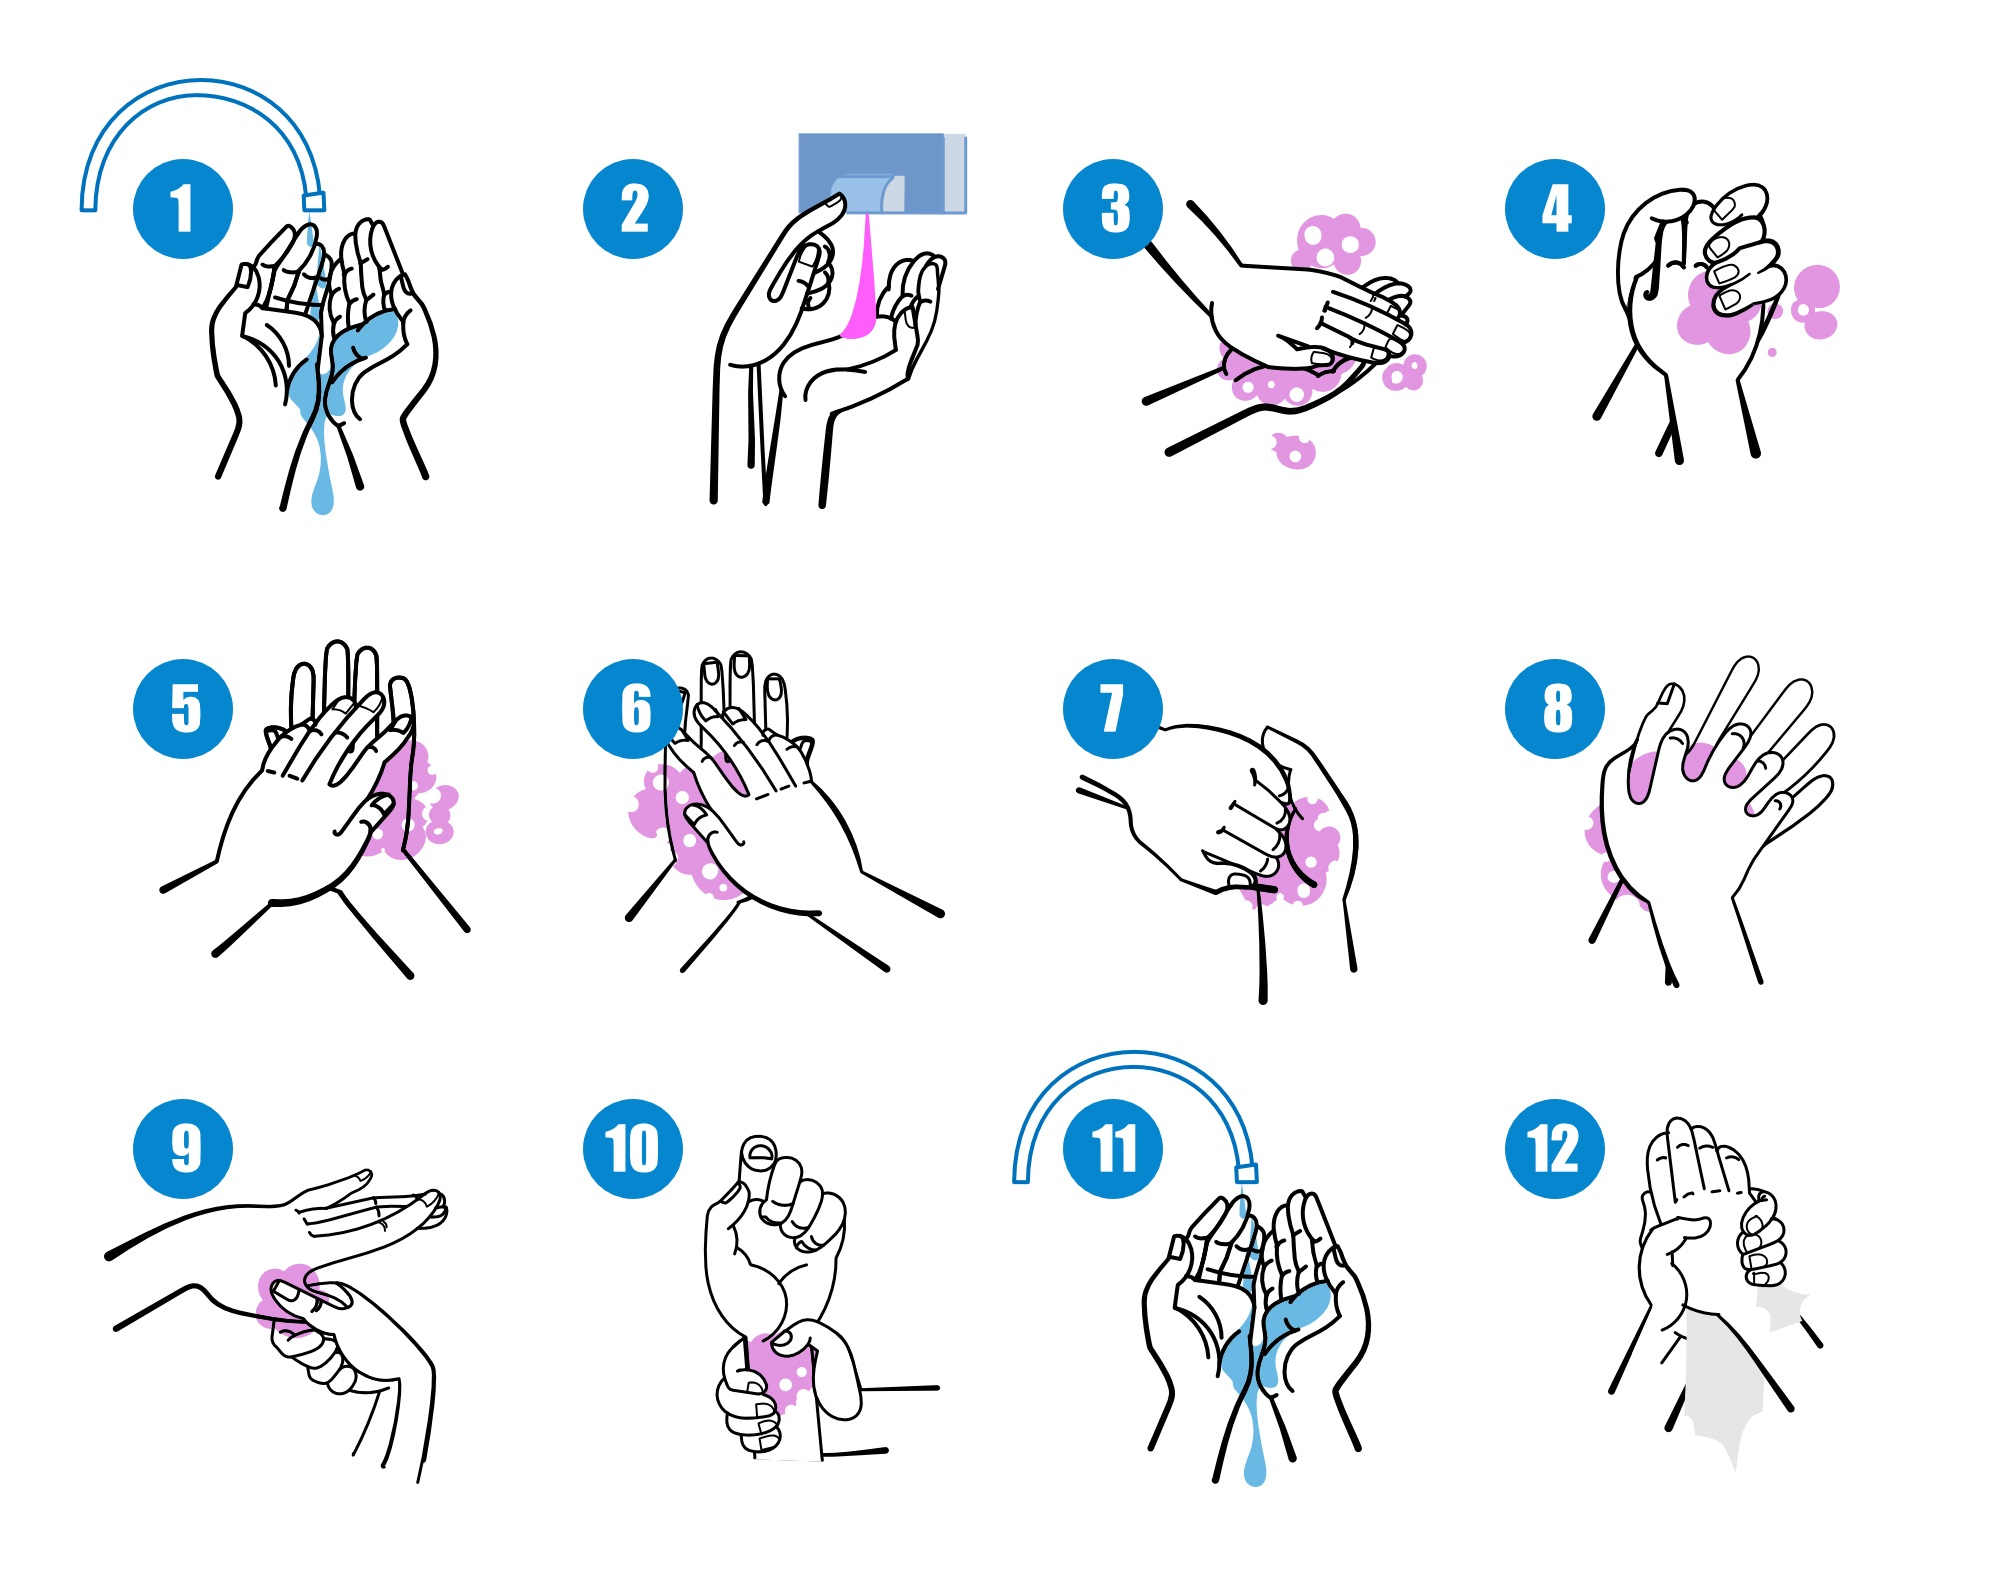 How to Clean a Violin - Instruction How To Wash Hands